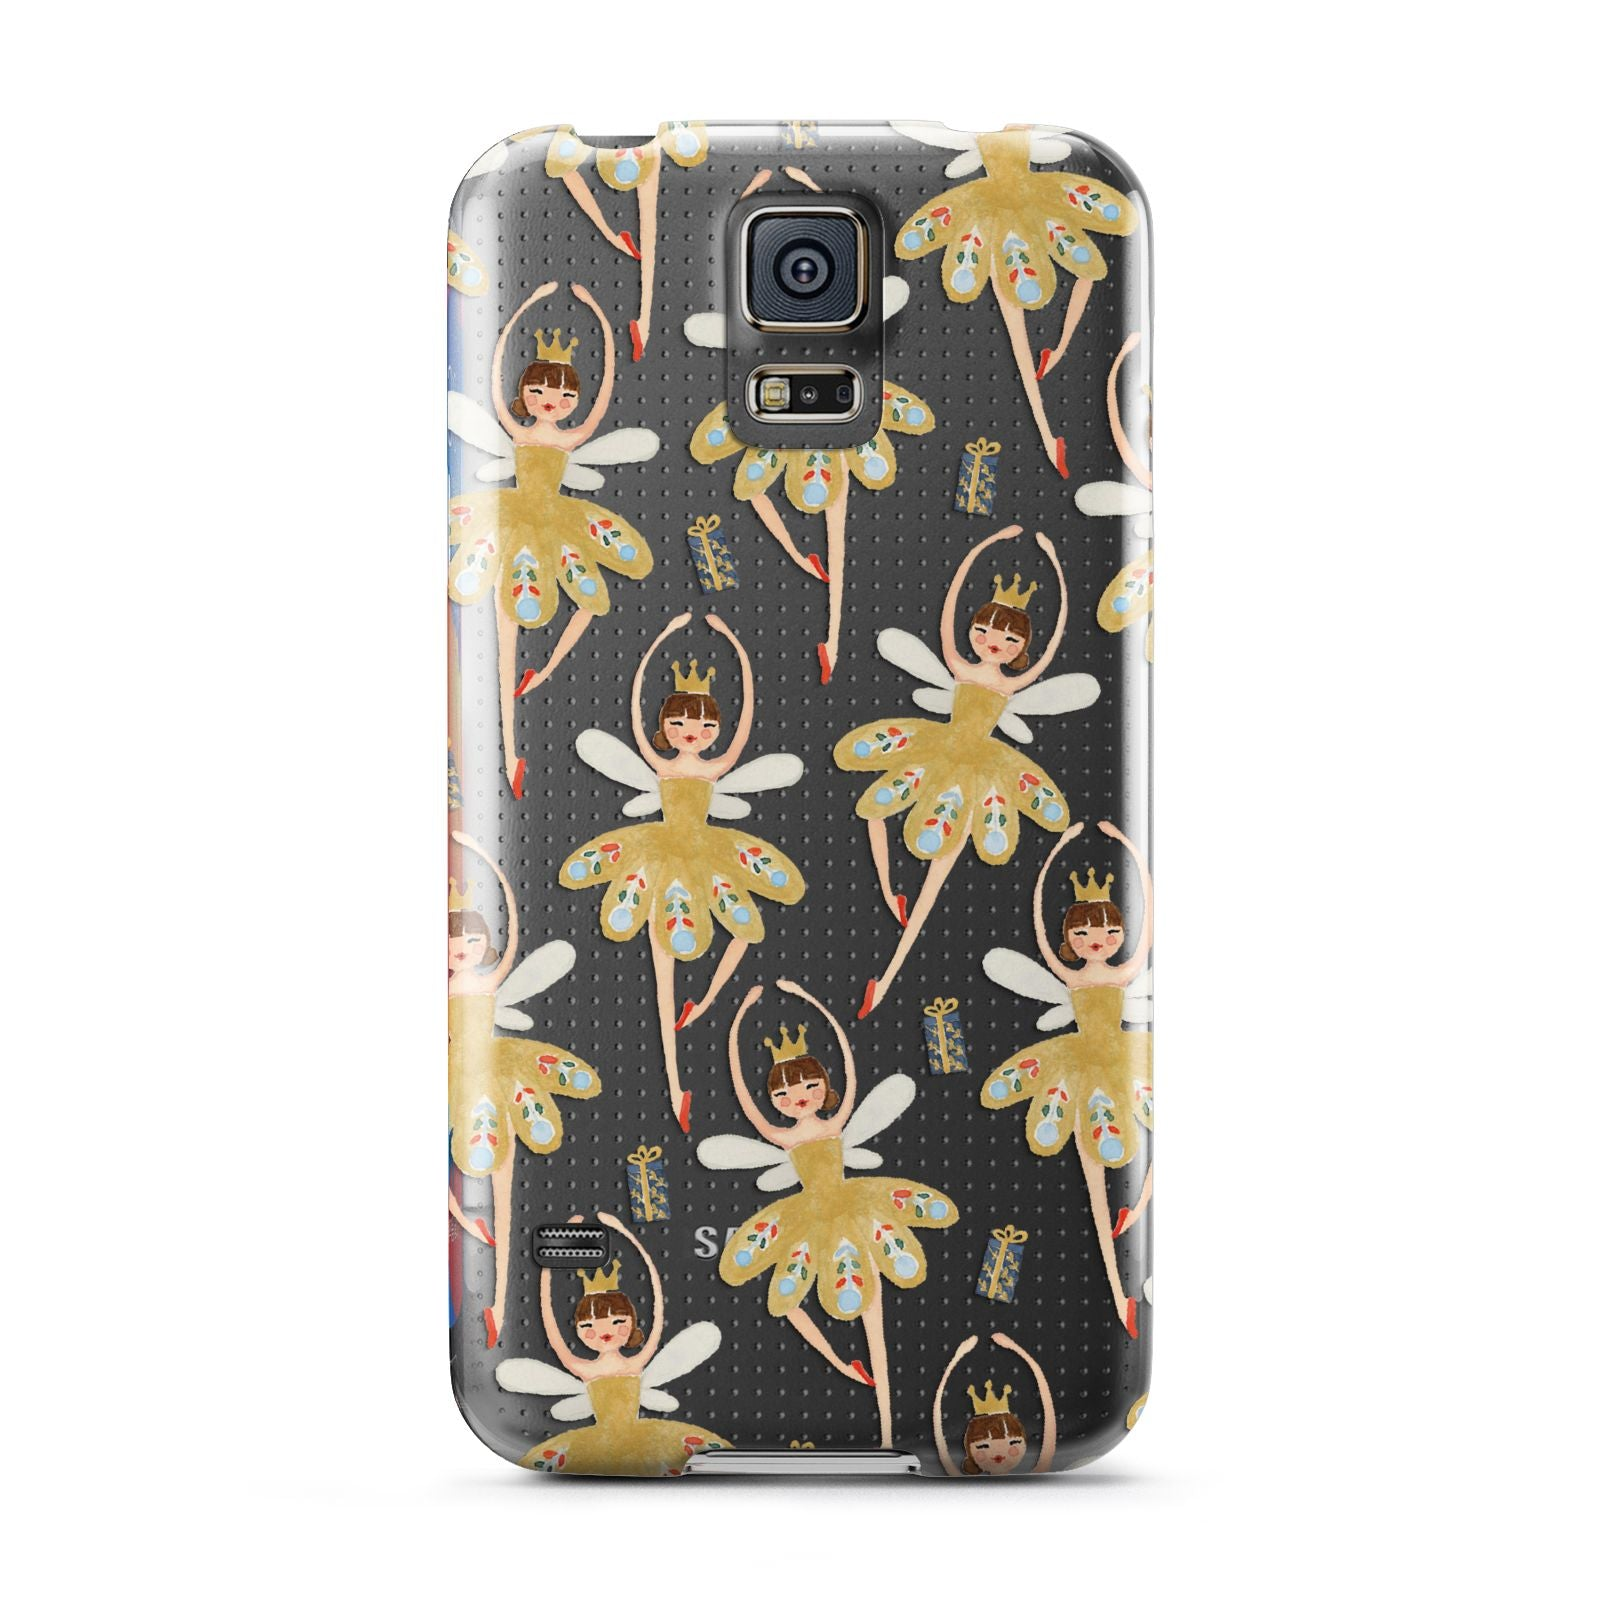 Dancing ballerina princess Samsung Galaxy S5 Case